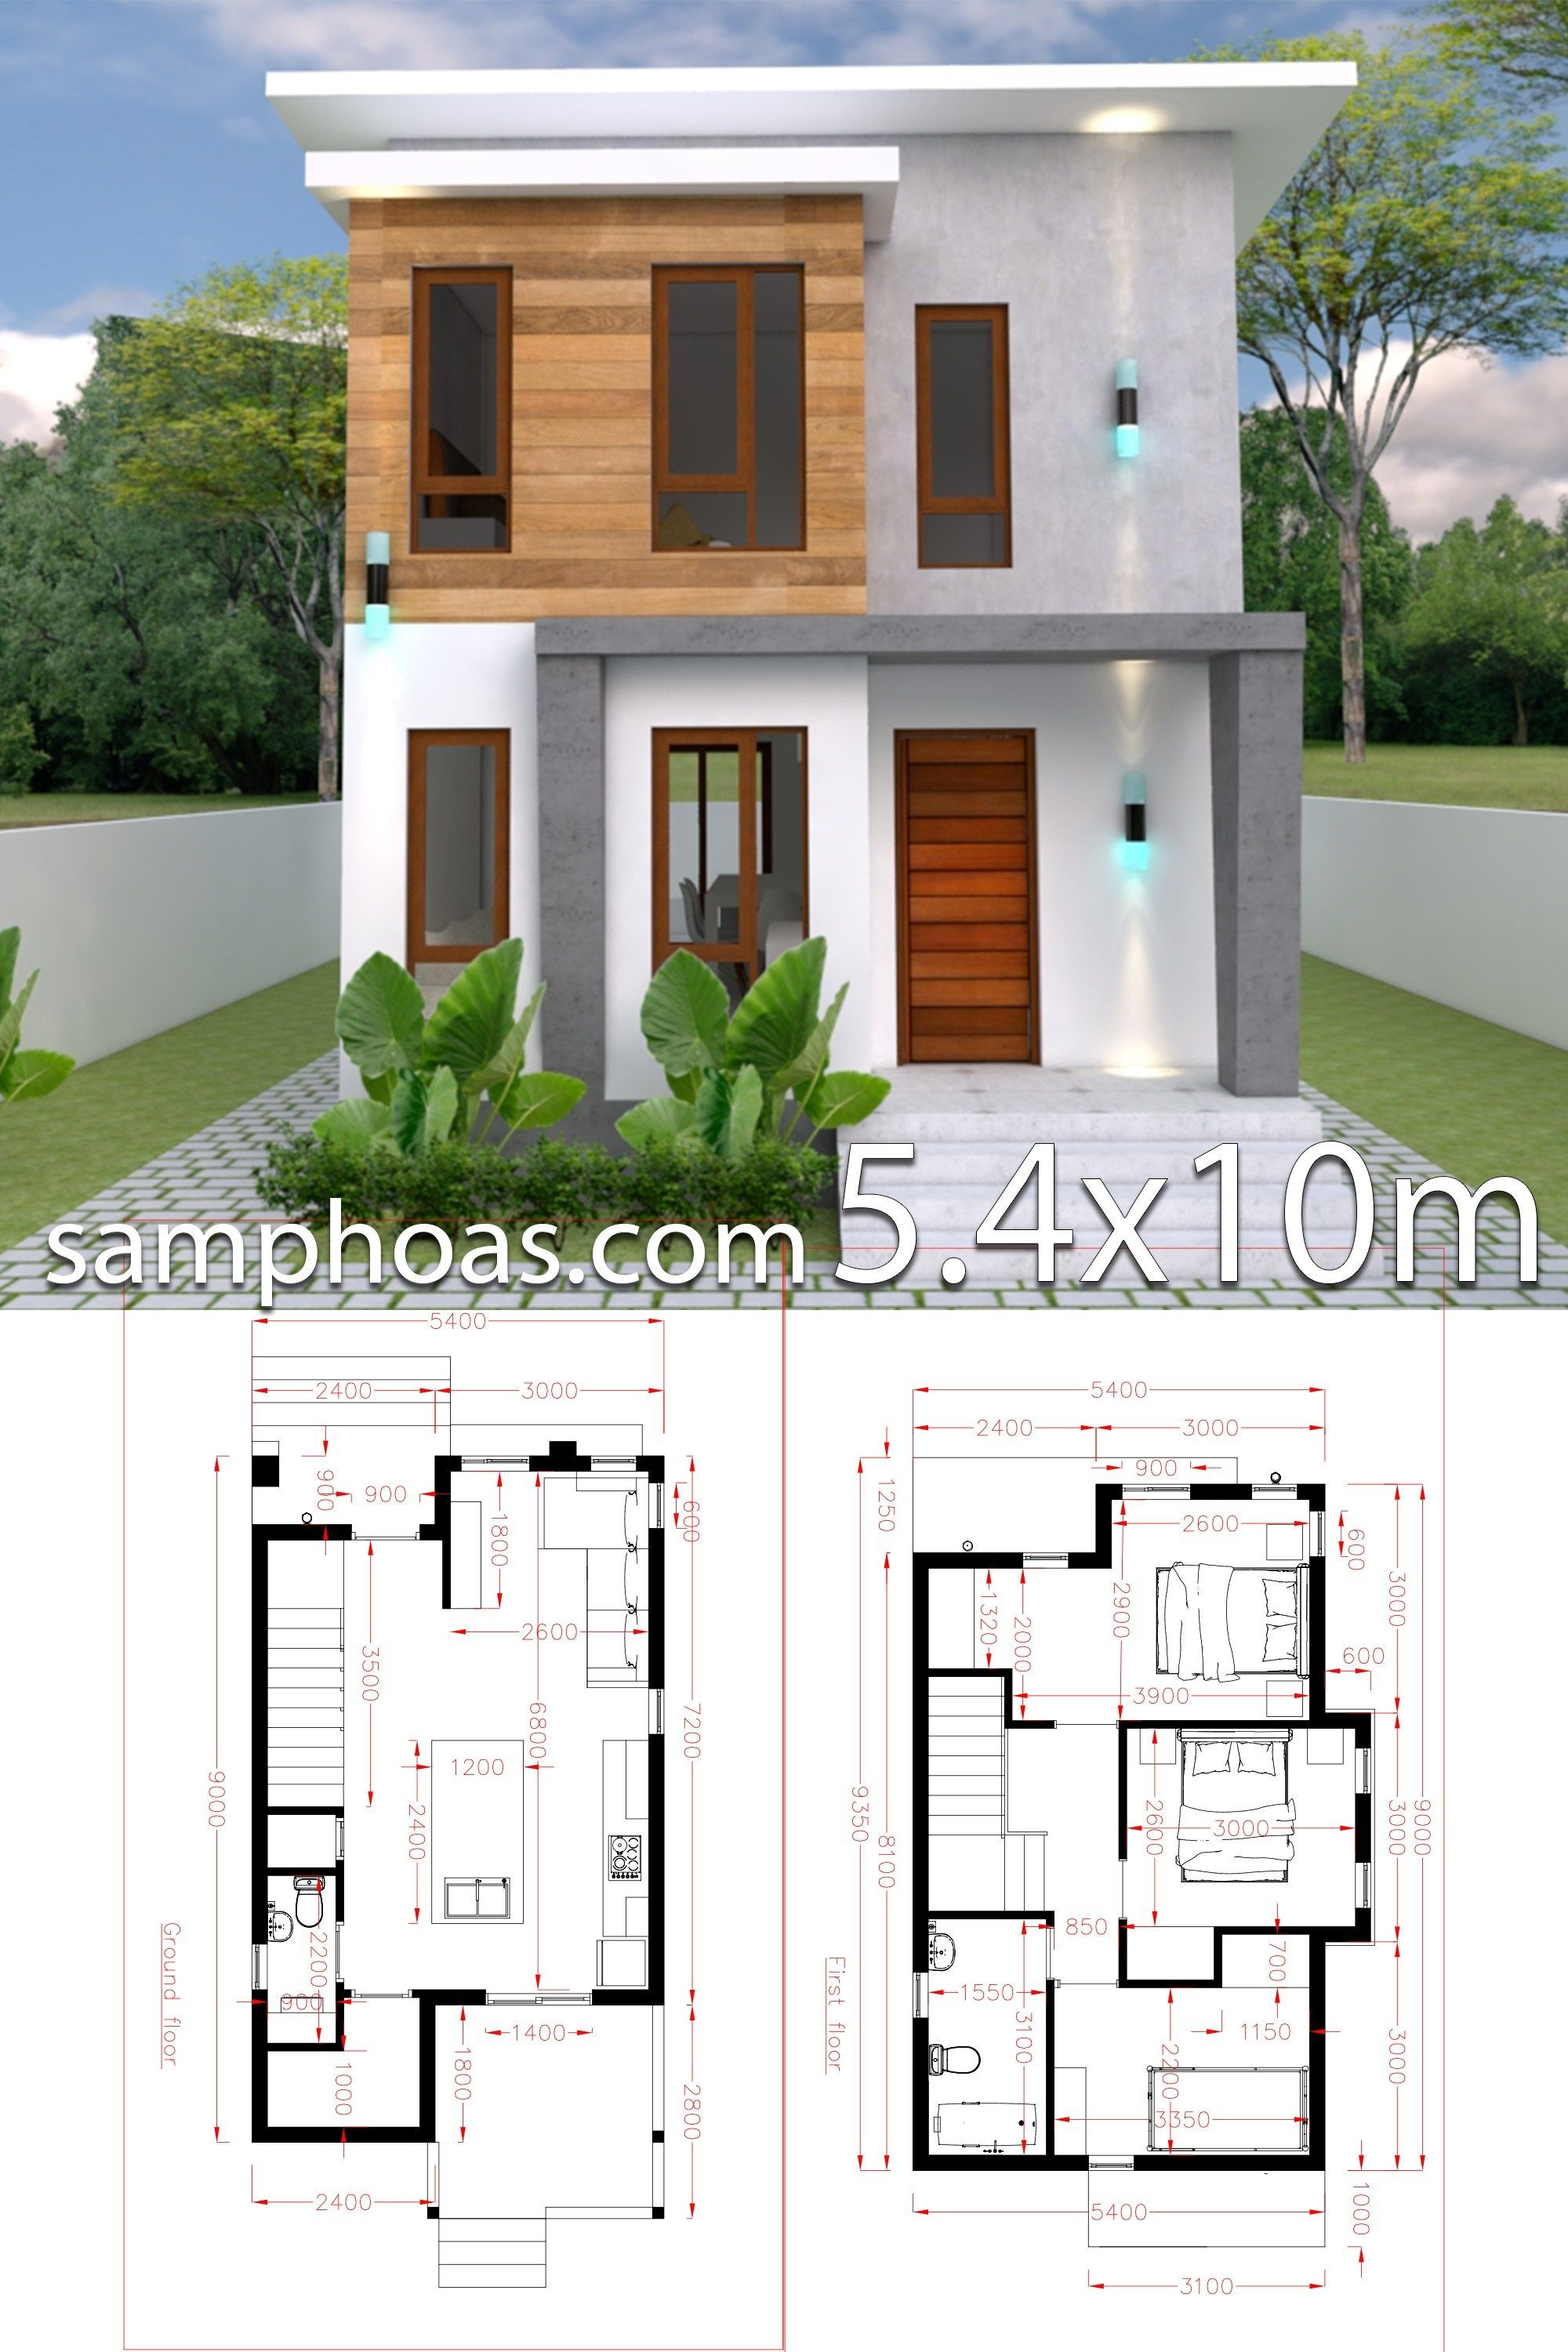 Small Houses Designs and Plans Fresh Small Home Design Plan 5 4x10m with 3 Bedroom